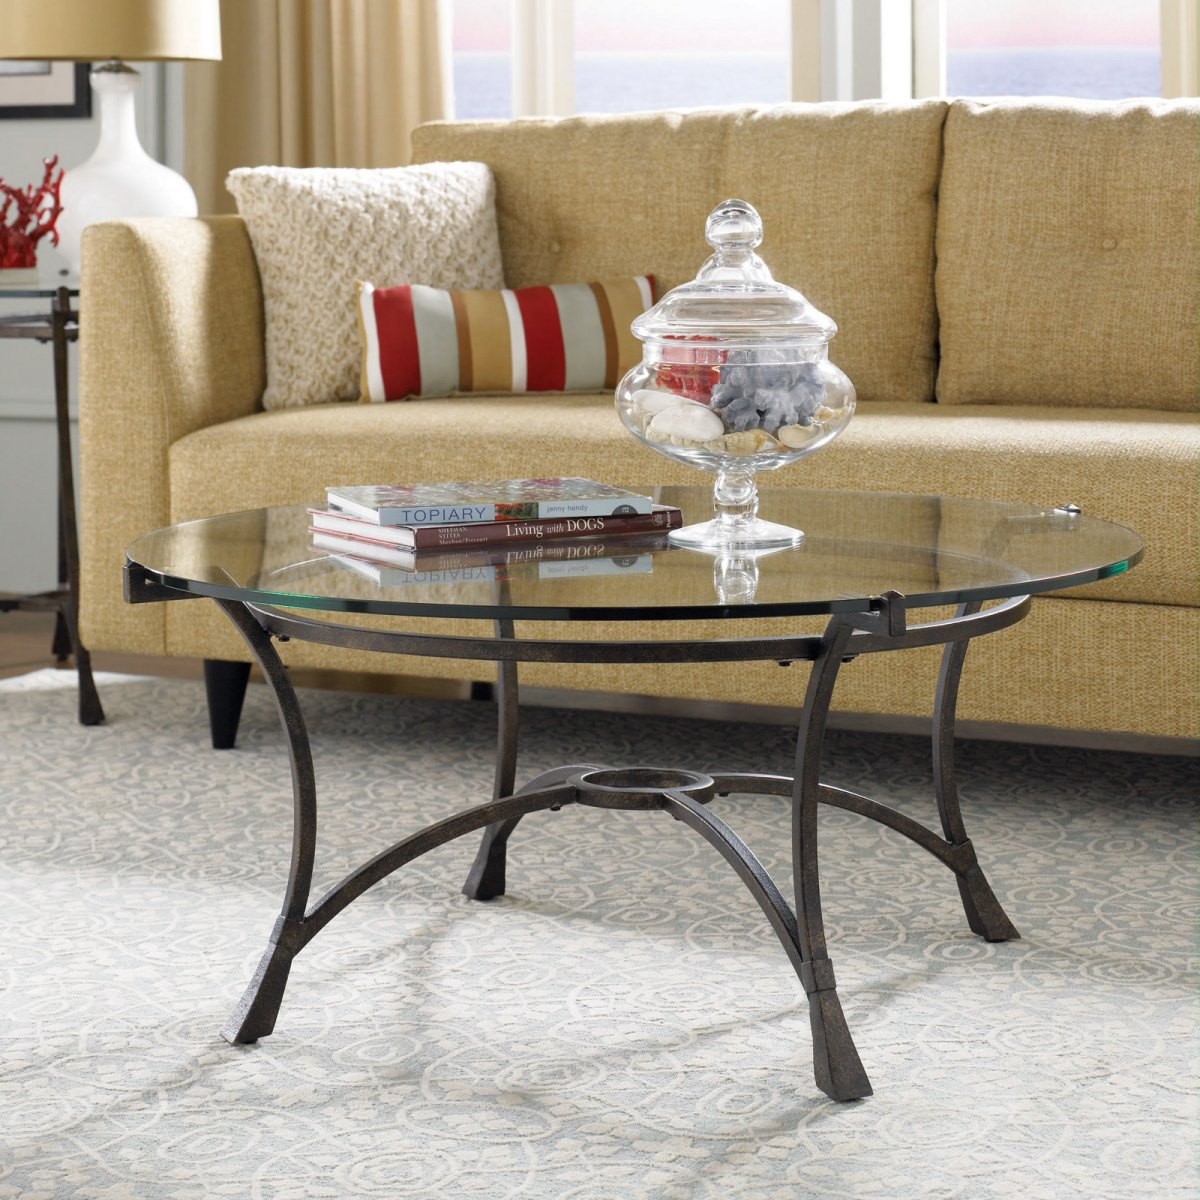 round glass top coffee table ideas decorating how decorate crate and barrel end foxcroft furniture miami dolphins kmart gold shoes green nightstand inch high laura ashley great